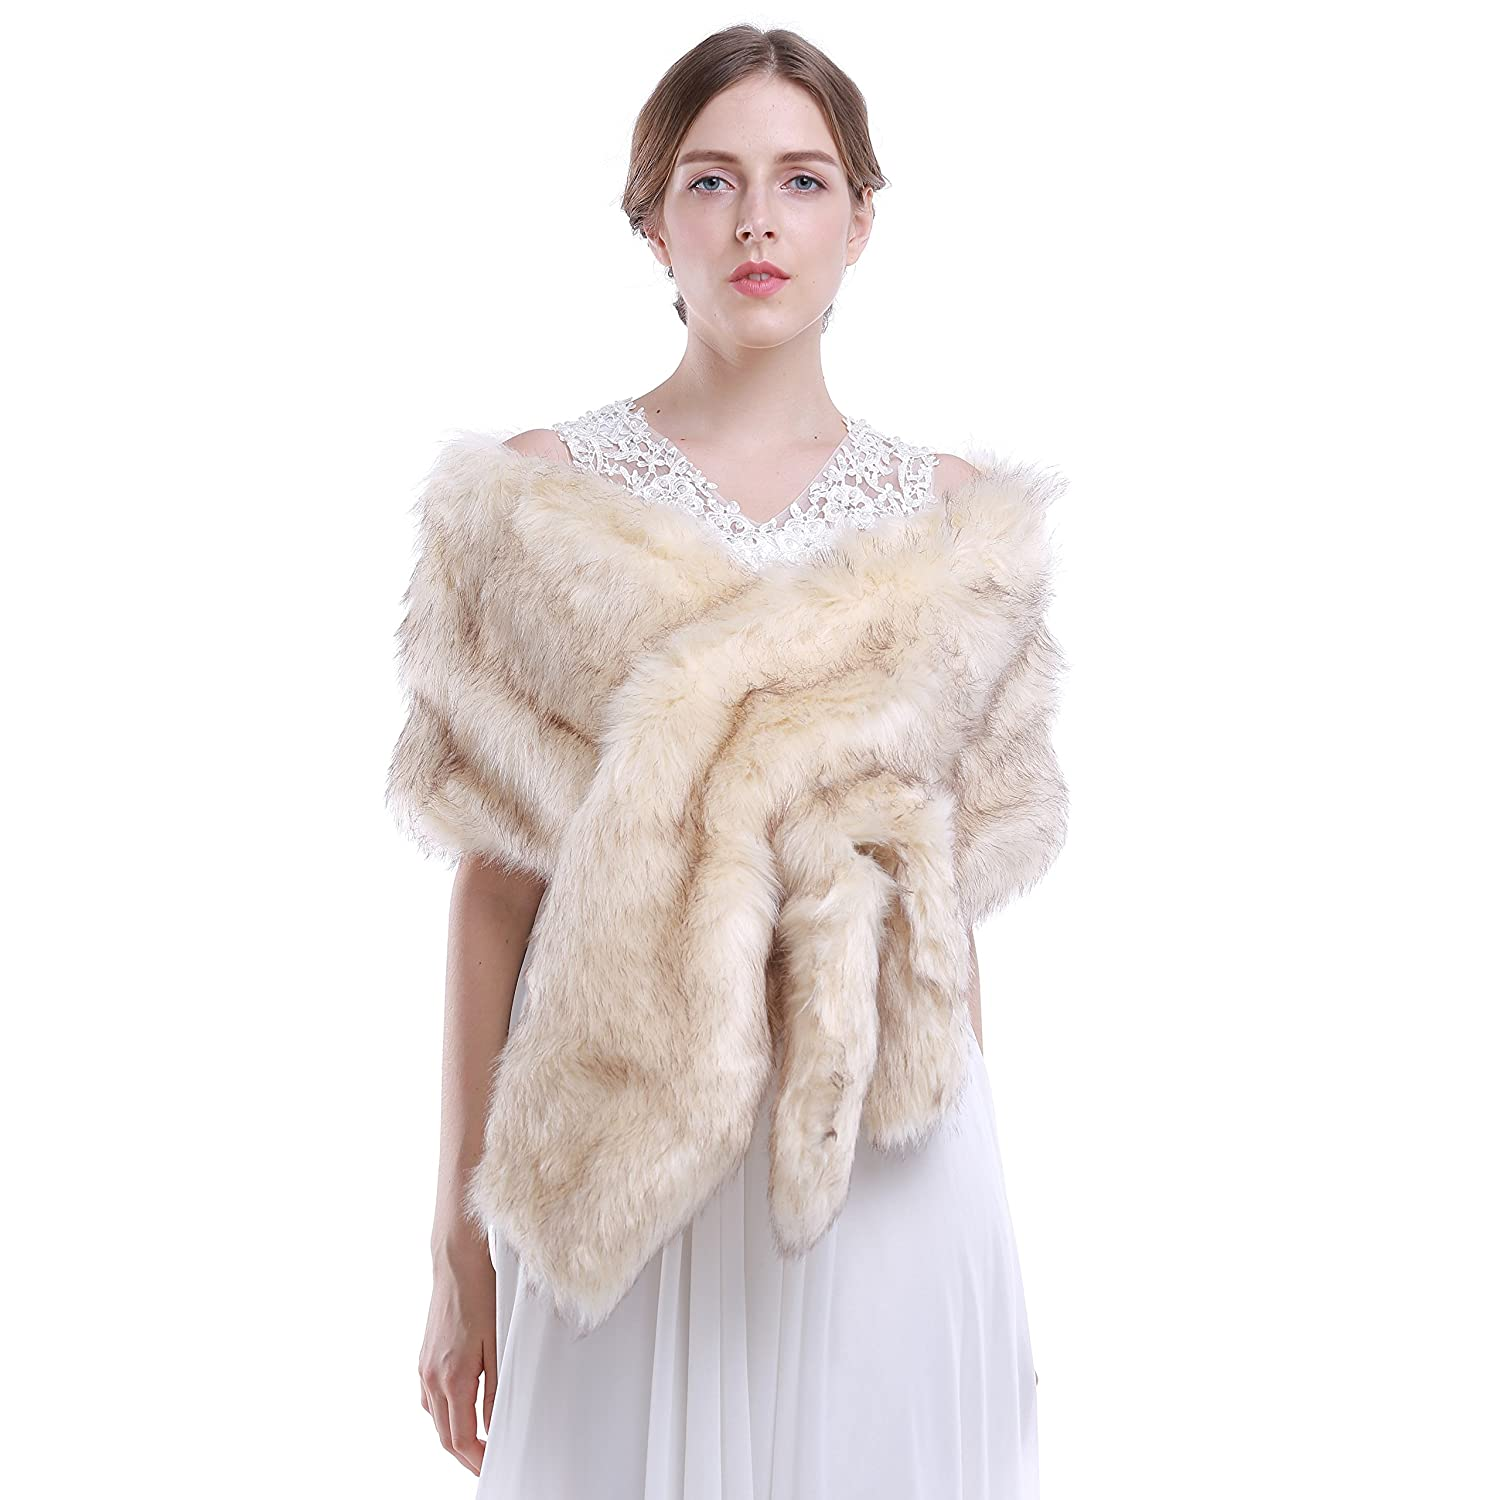 HailieBridal Beige Sleeveless Faux Fur Bride Bridesmaid Wedding Shawl HailieStudio